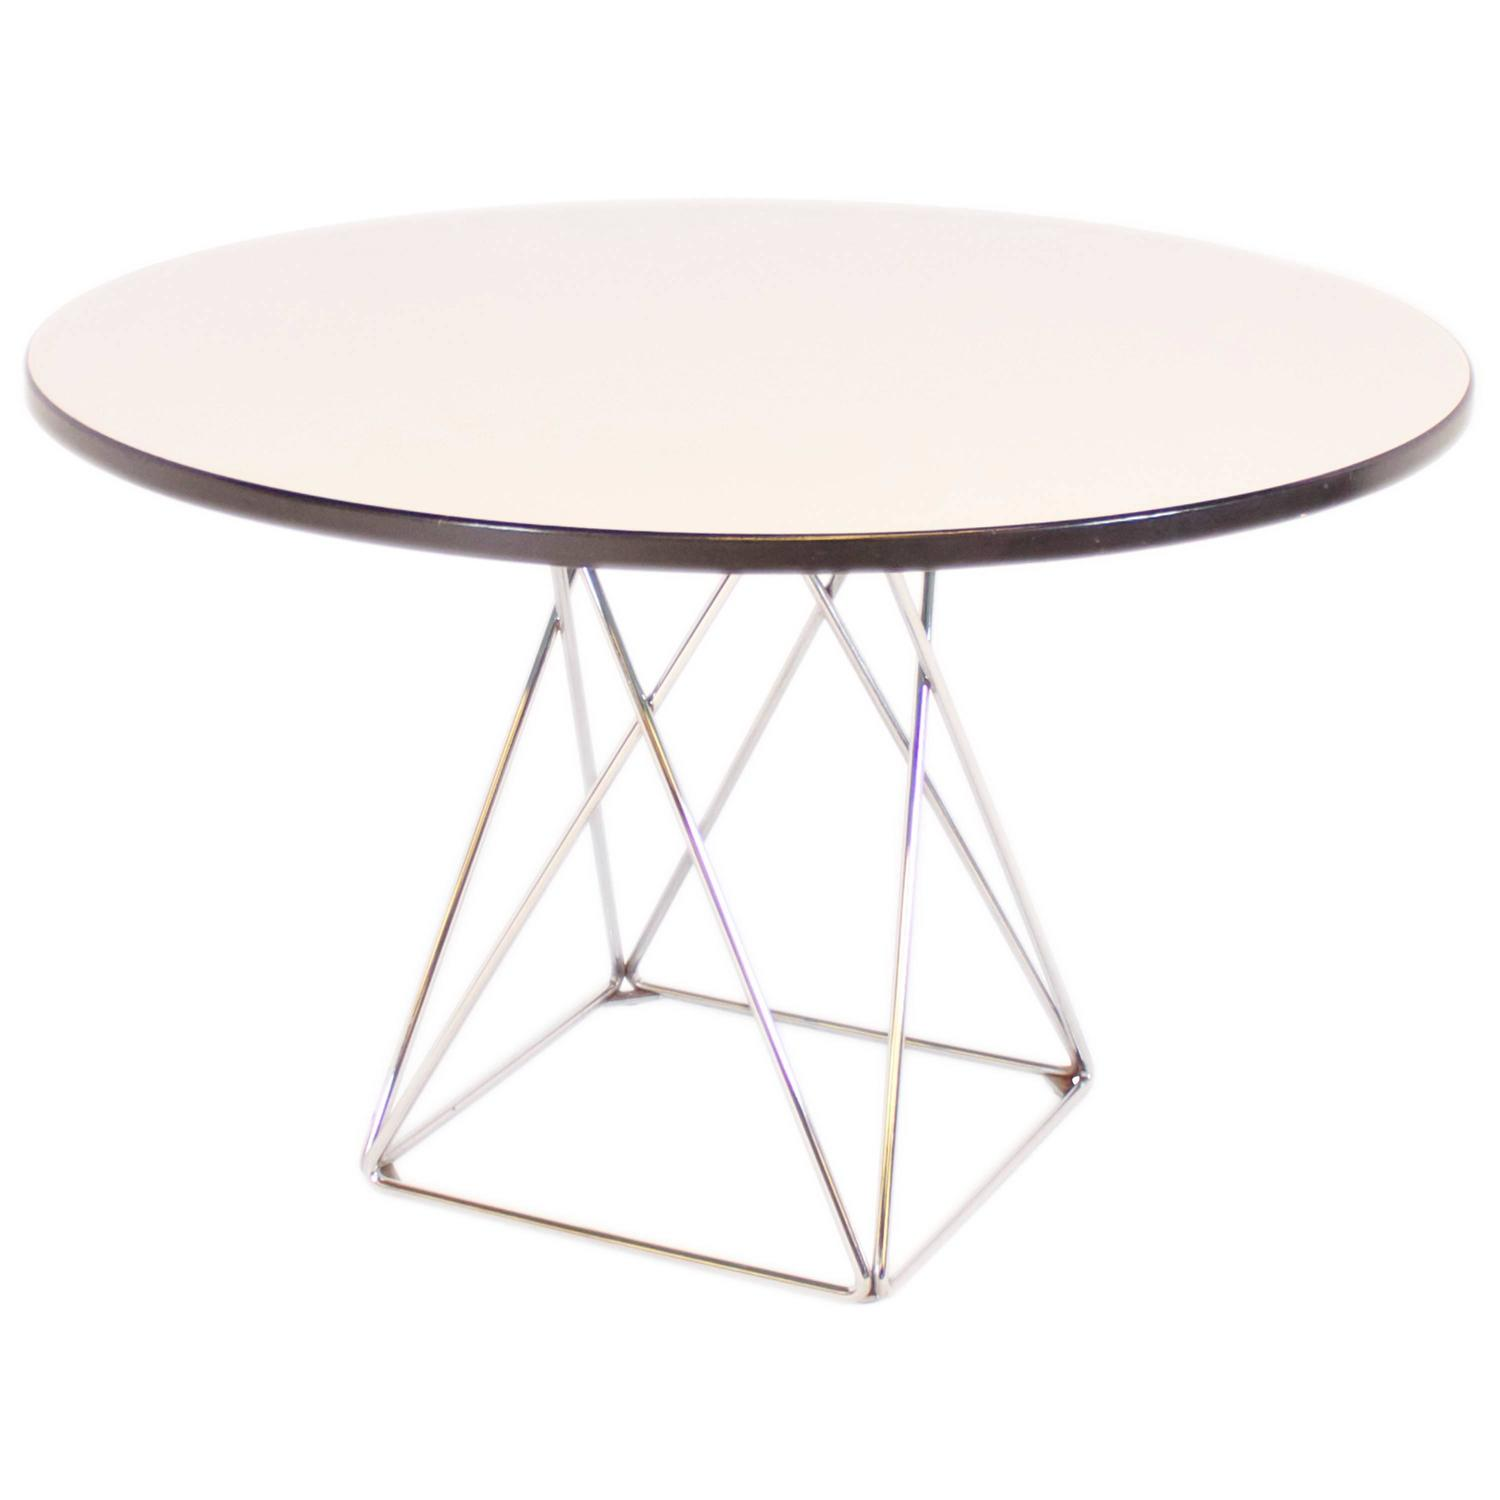 Thonet Formica and Chrome Dining Table at 1stdibs